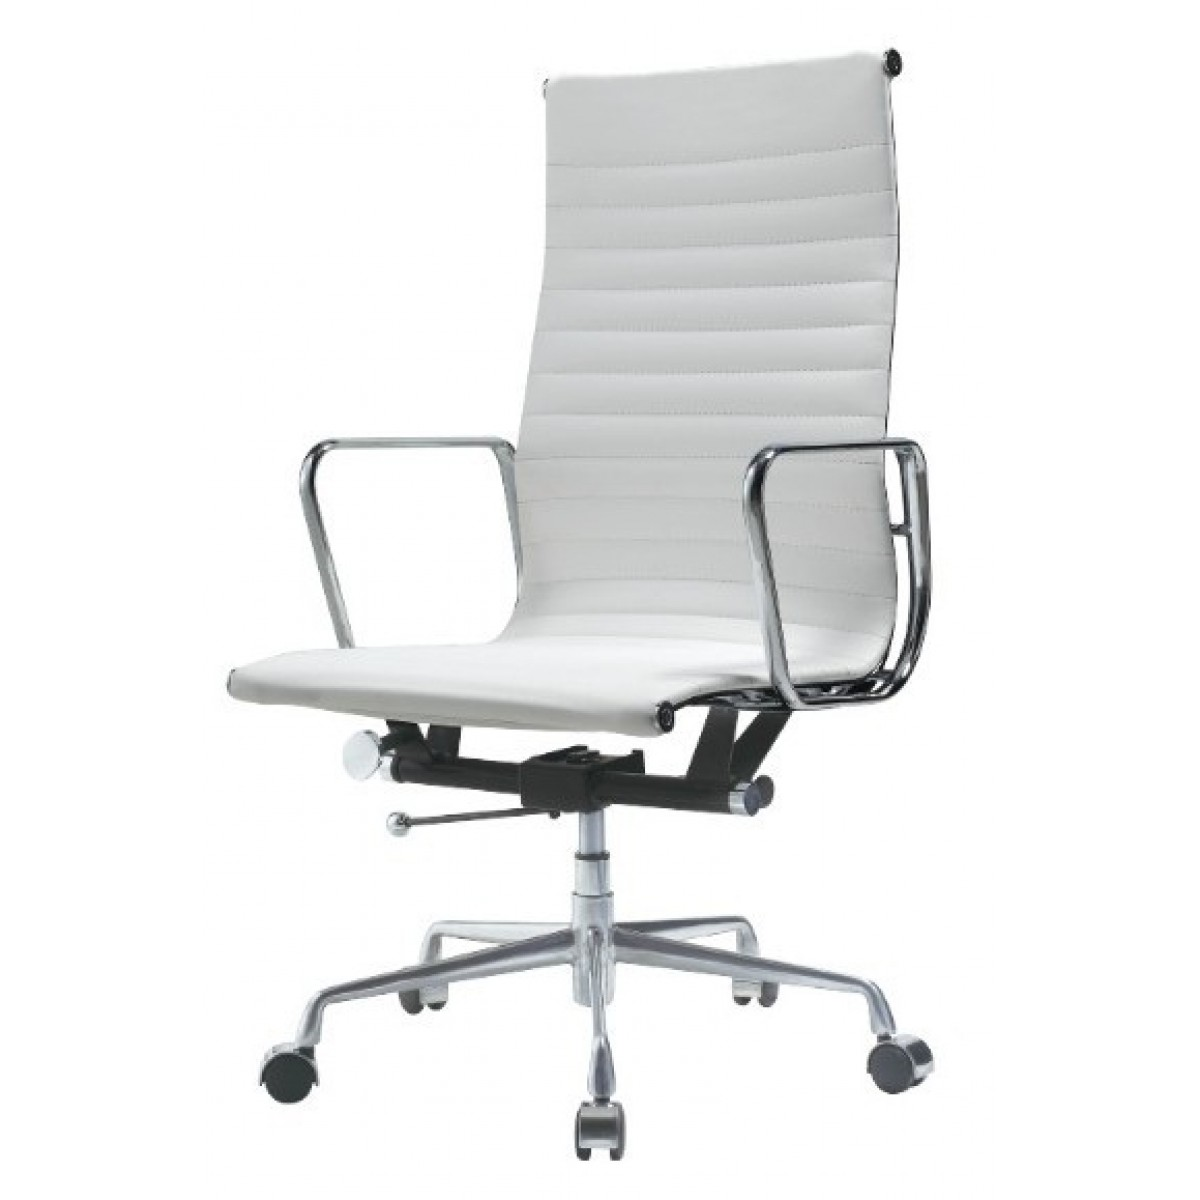 ea119 eames style office chair high back ribbed white leather. Black Bedroom Furniture Sets. Home Design Ideas